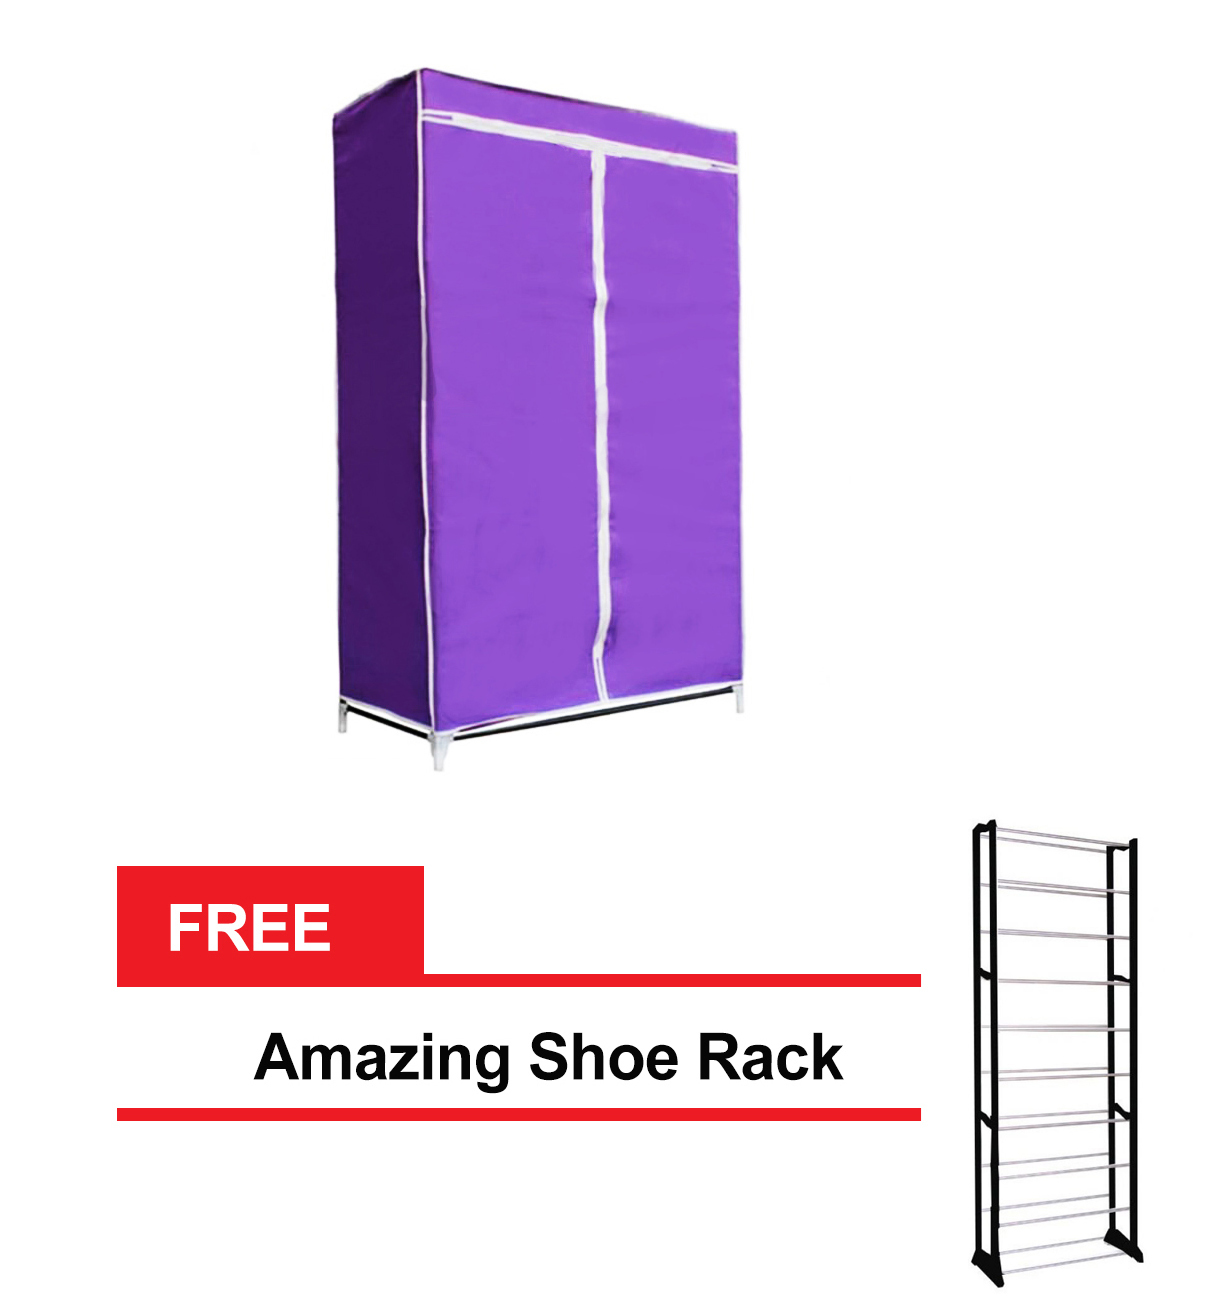 Storage Wardrobe and Clothes Organizer (Purple) with FREE Amazing Shoe Rack